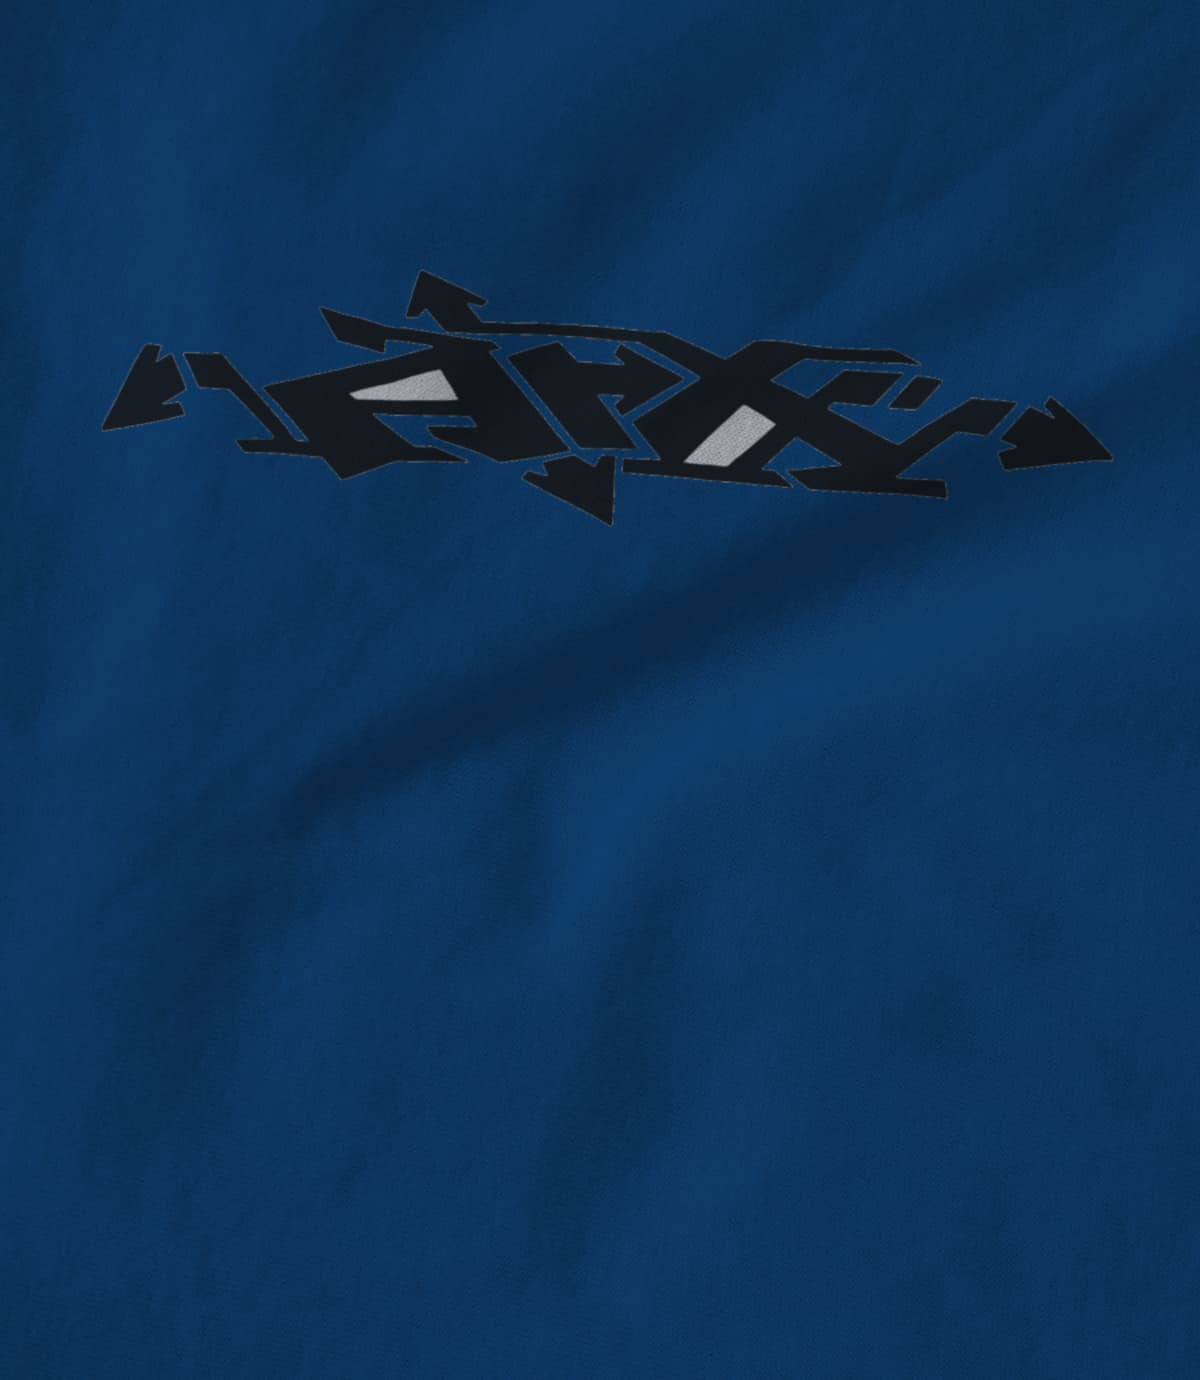 Architecture recordings arx graff   blue hoodie 1596466880